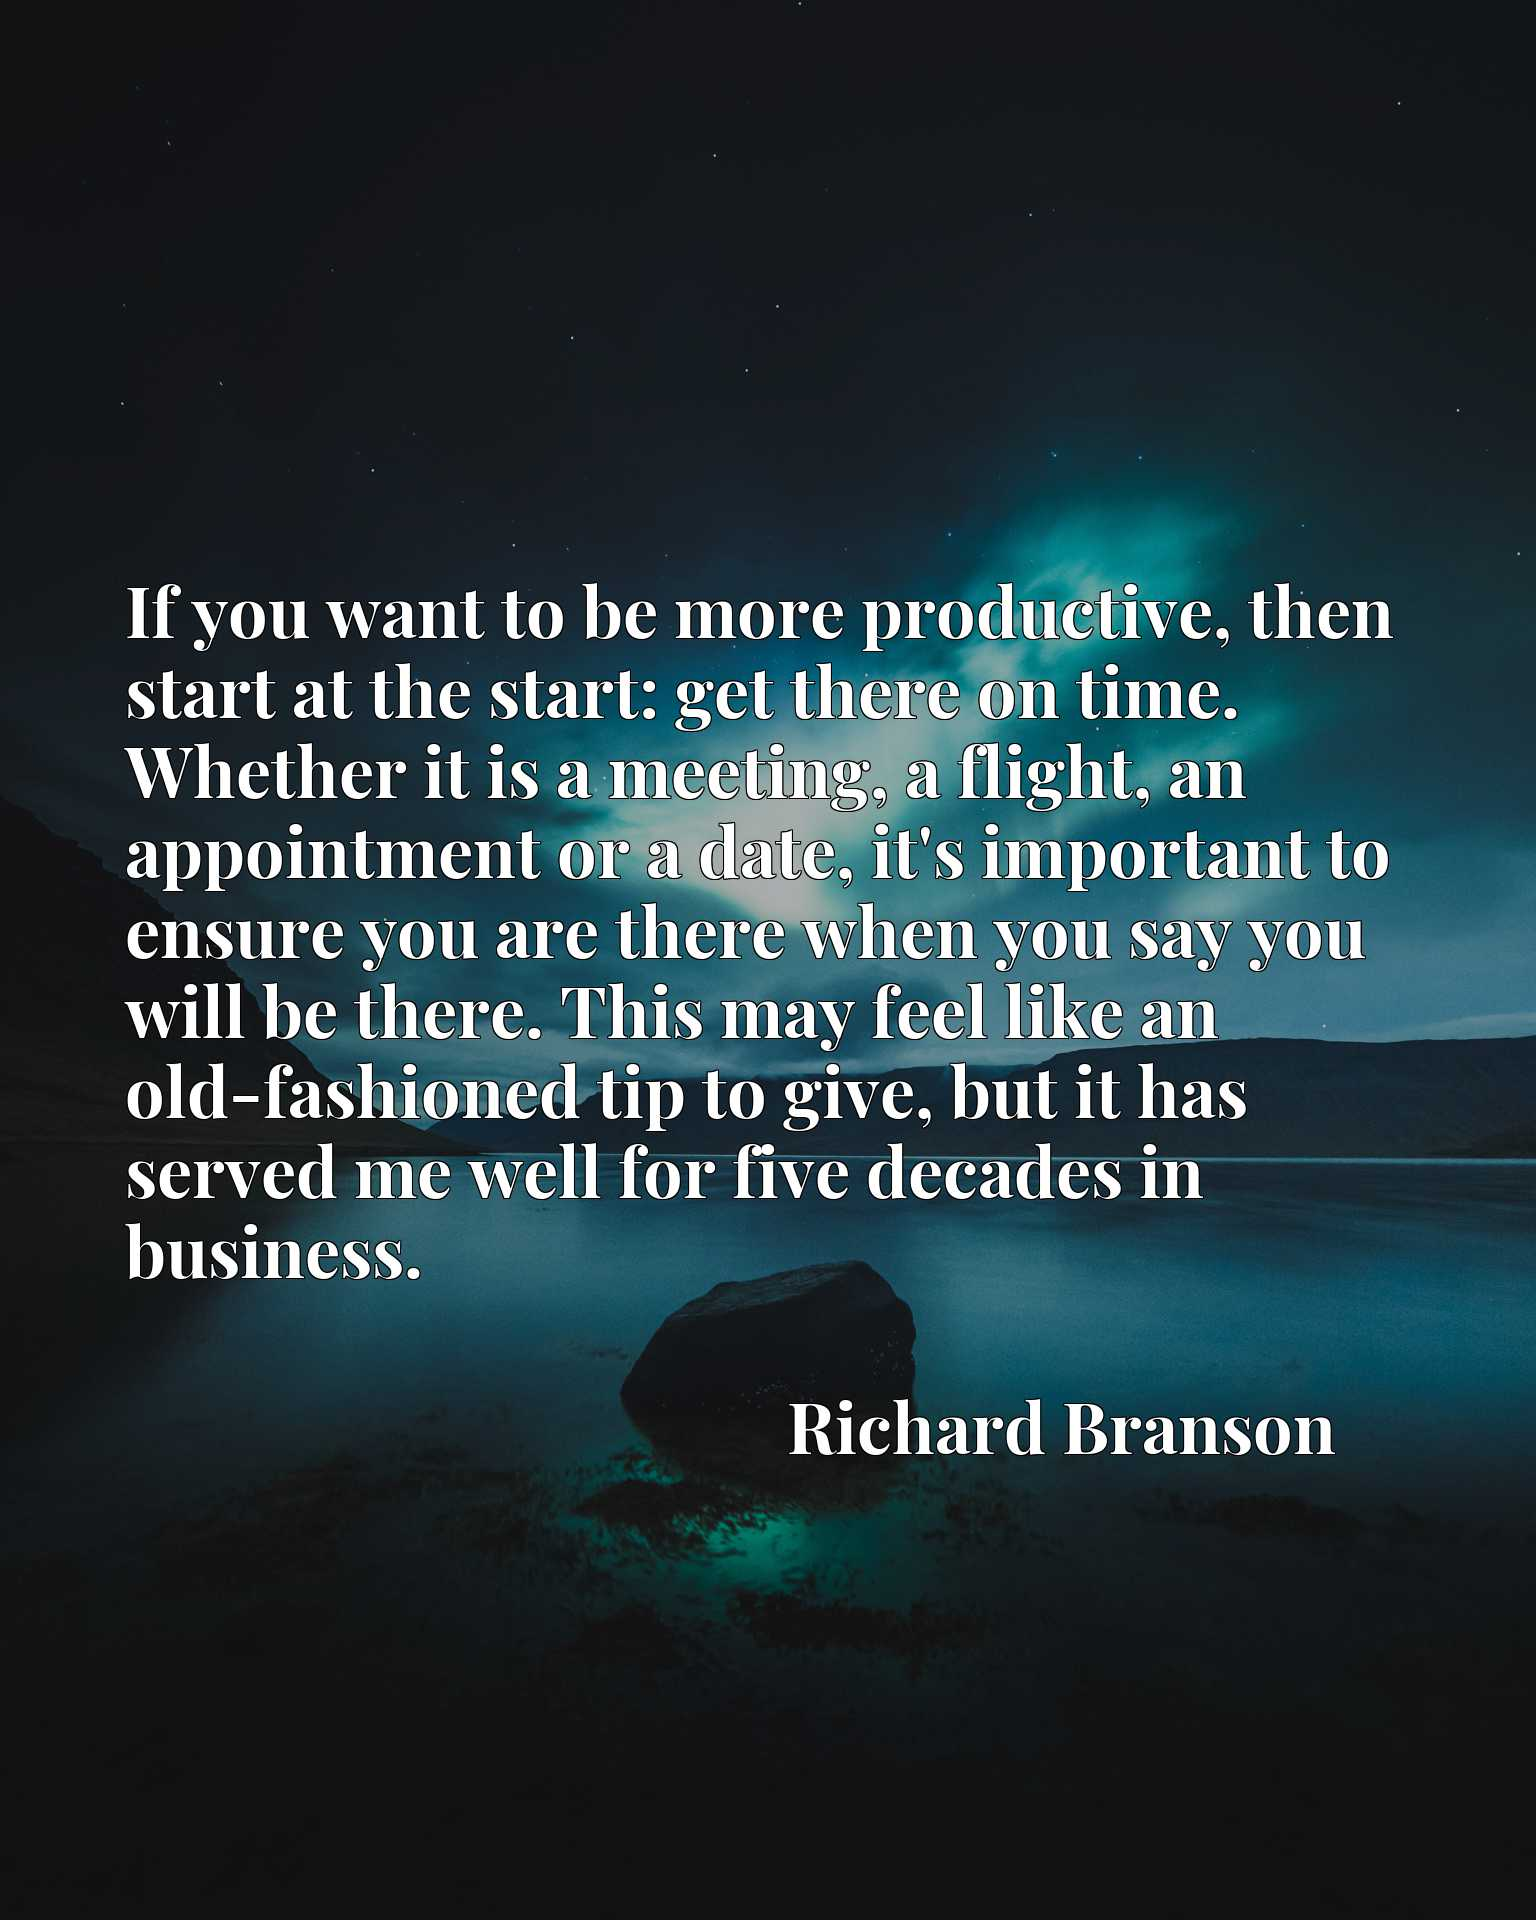 If you want to be more productive, then start at the start: get there on time. Whether it is a meeting, a flight, an appointment or a date, it's important to ensure you are there when you say you will be there. This may feel like an old-fashioned tip to give, but it has served me well for five decades in business.